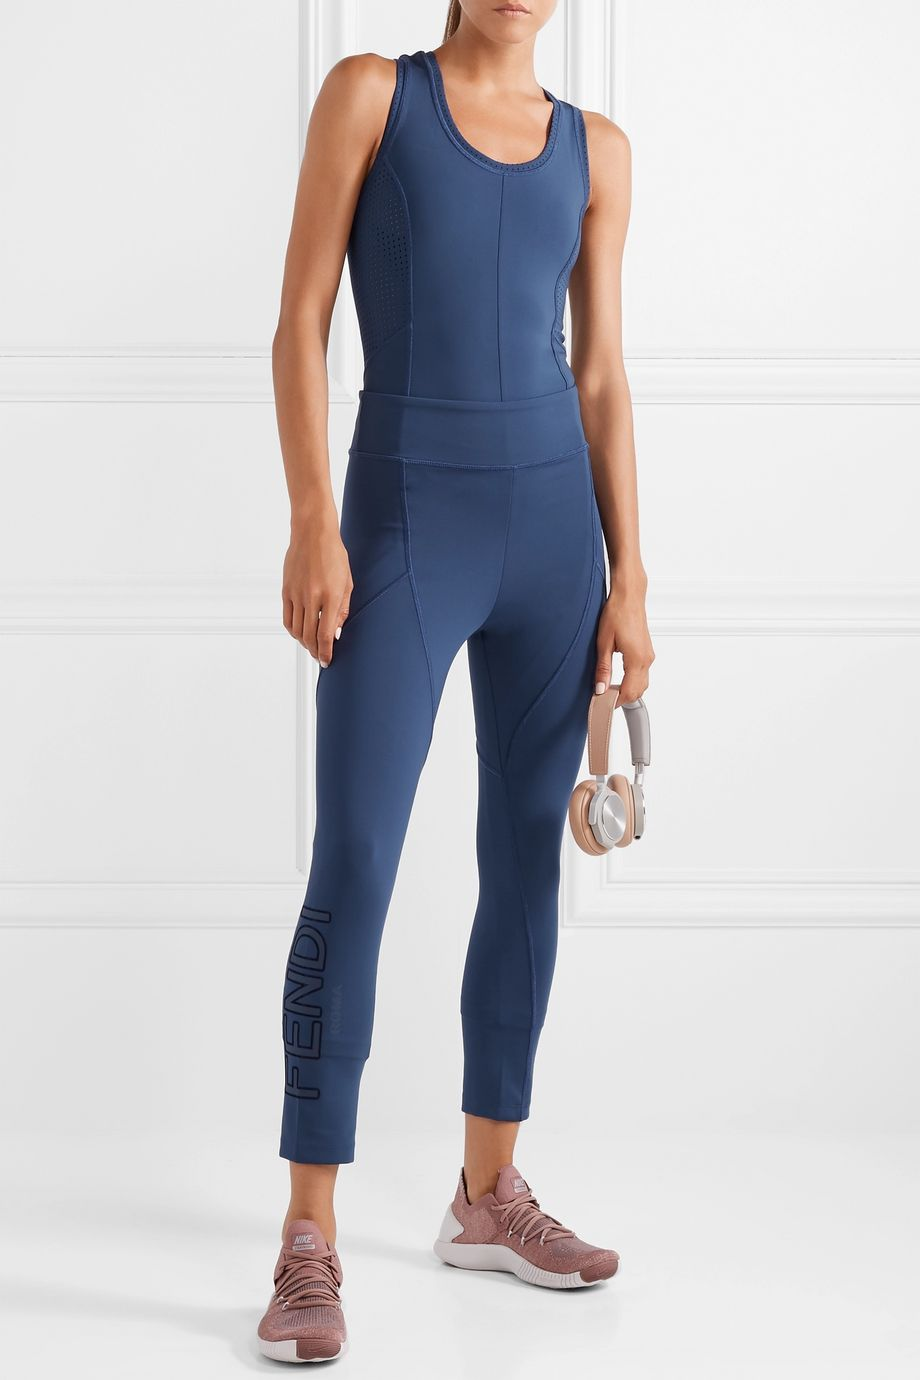 Fendi Roma stretch leggings